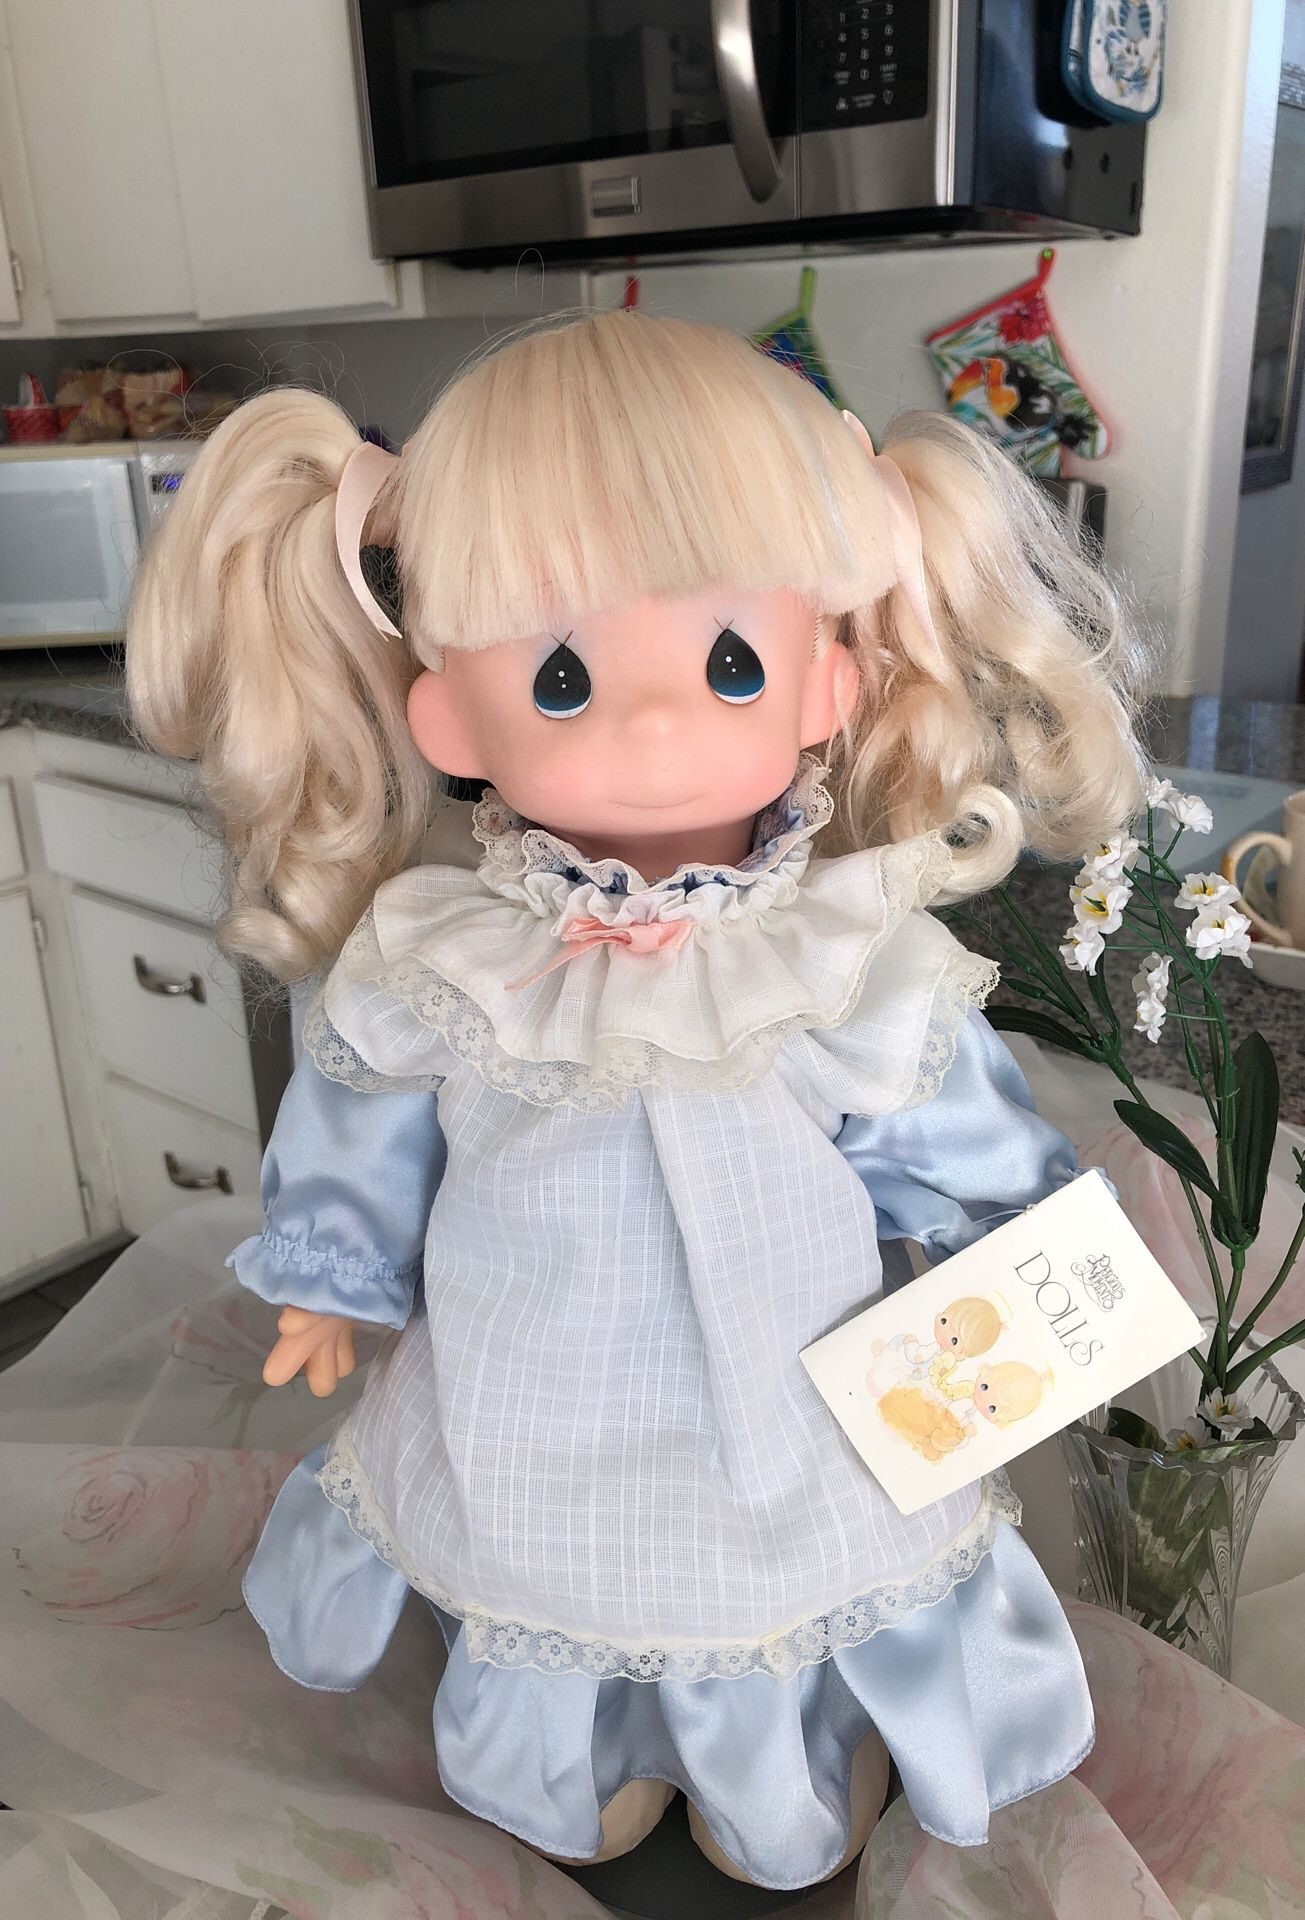 Precious moments vintage Barbie not included but if you're interested she's 250 getting back to the precious moment all in perfect condition very cle